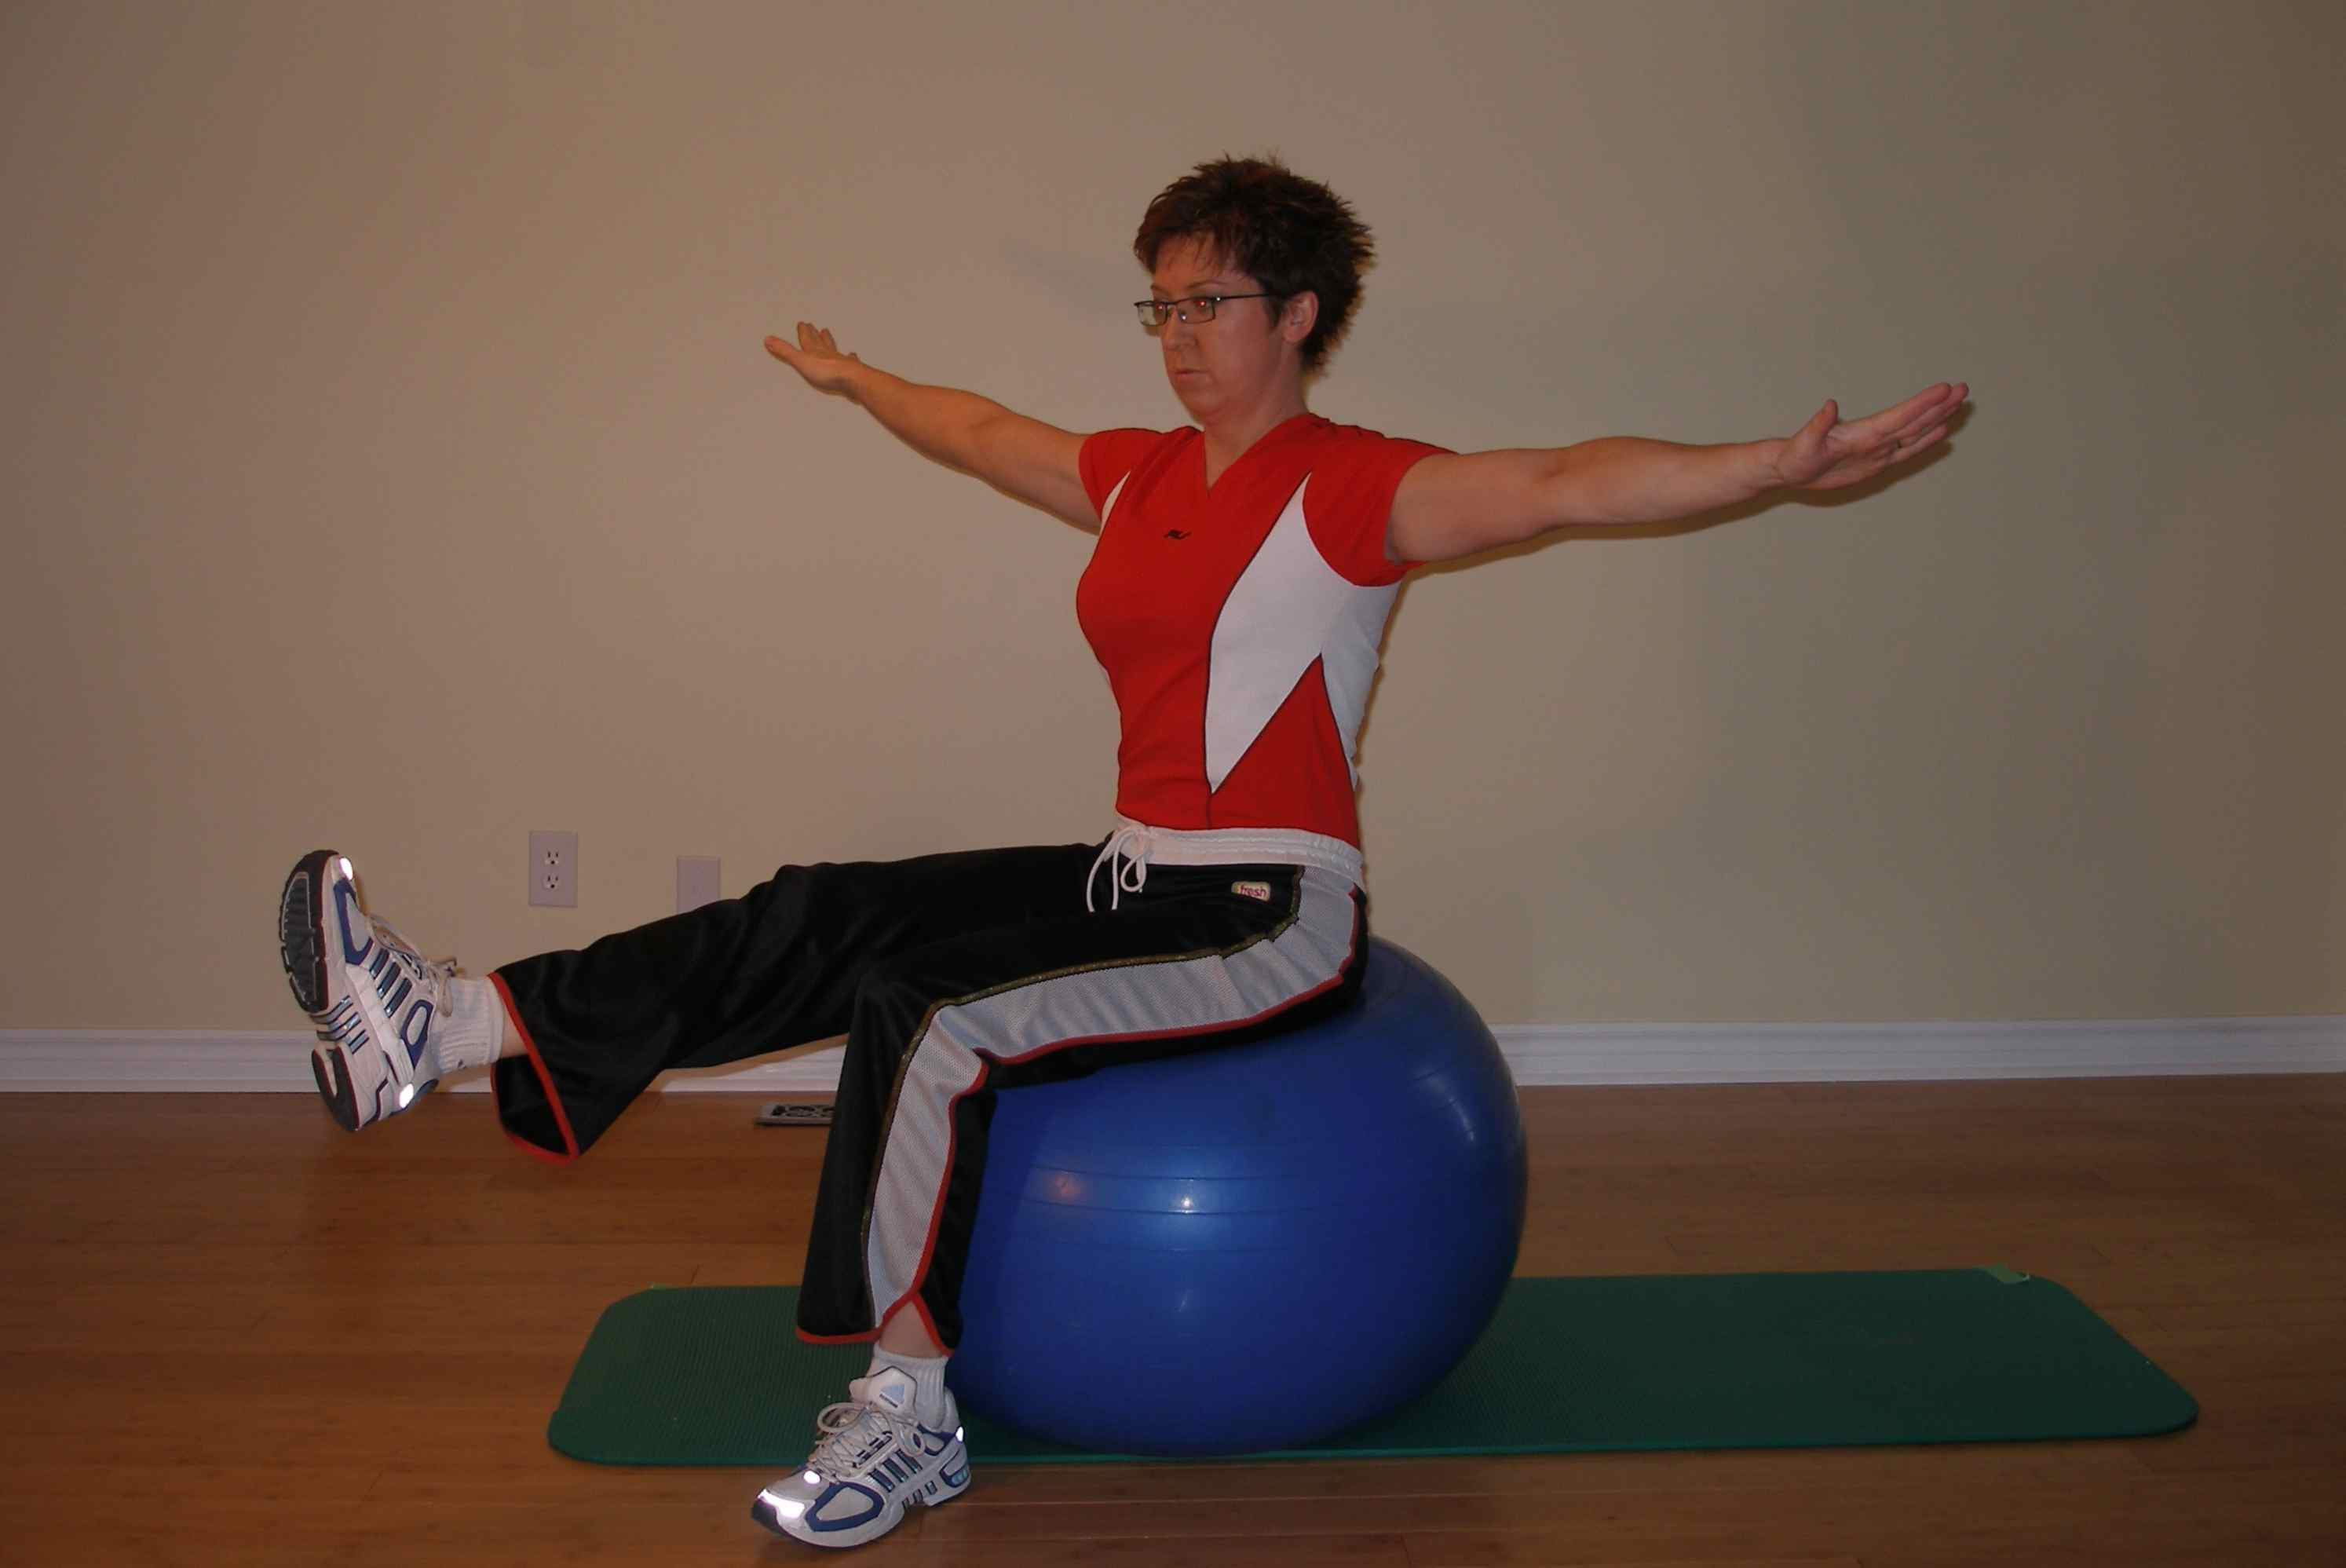 Exercise ball seated leg raise finish position